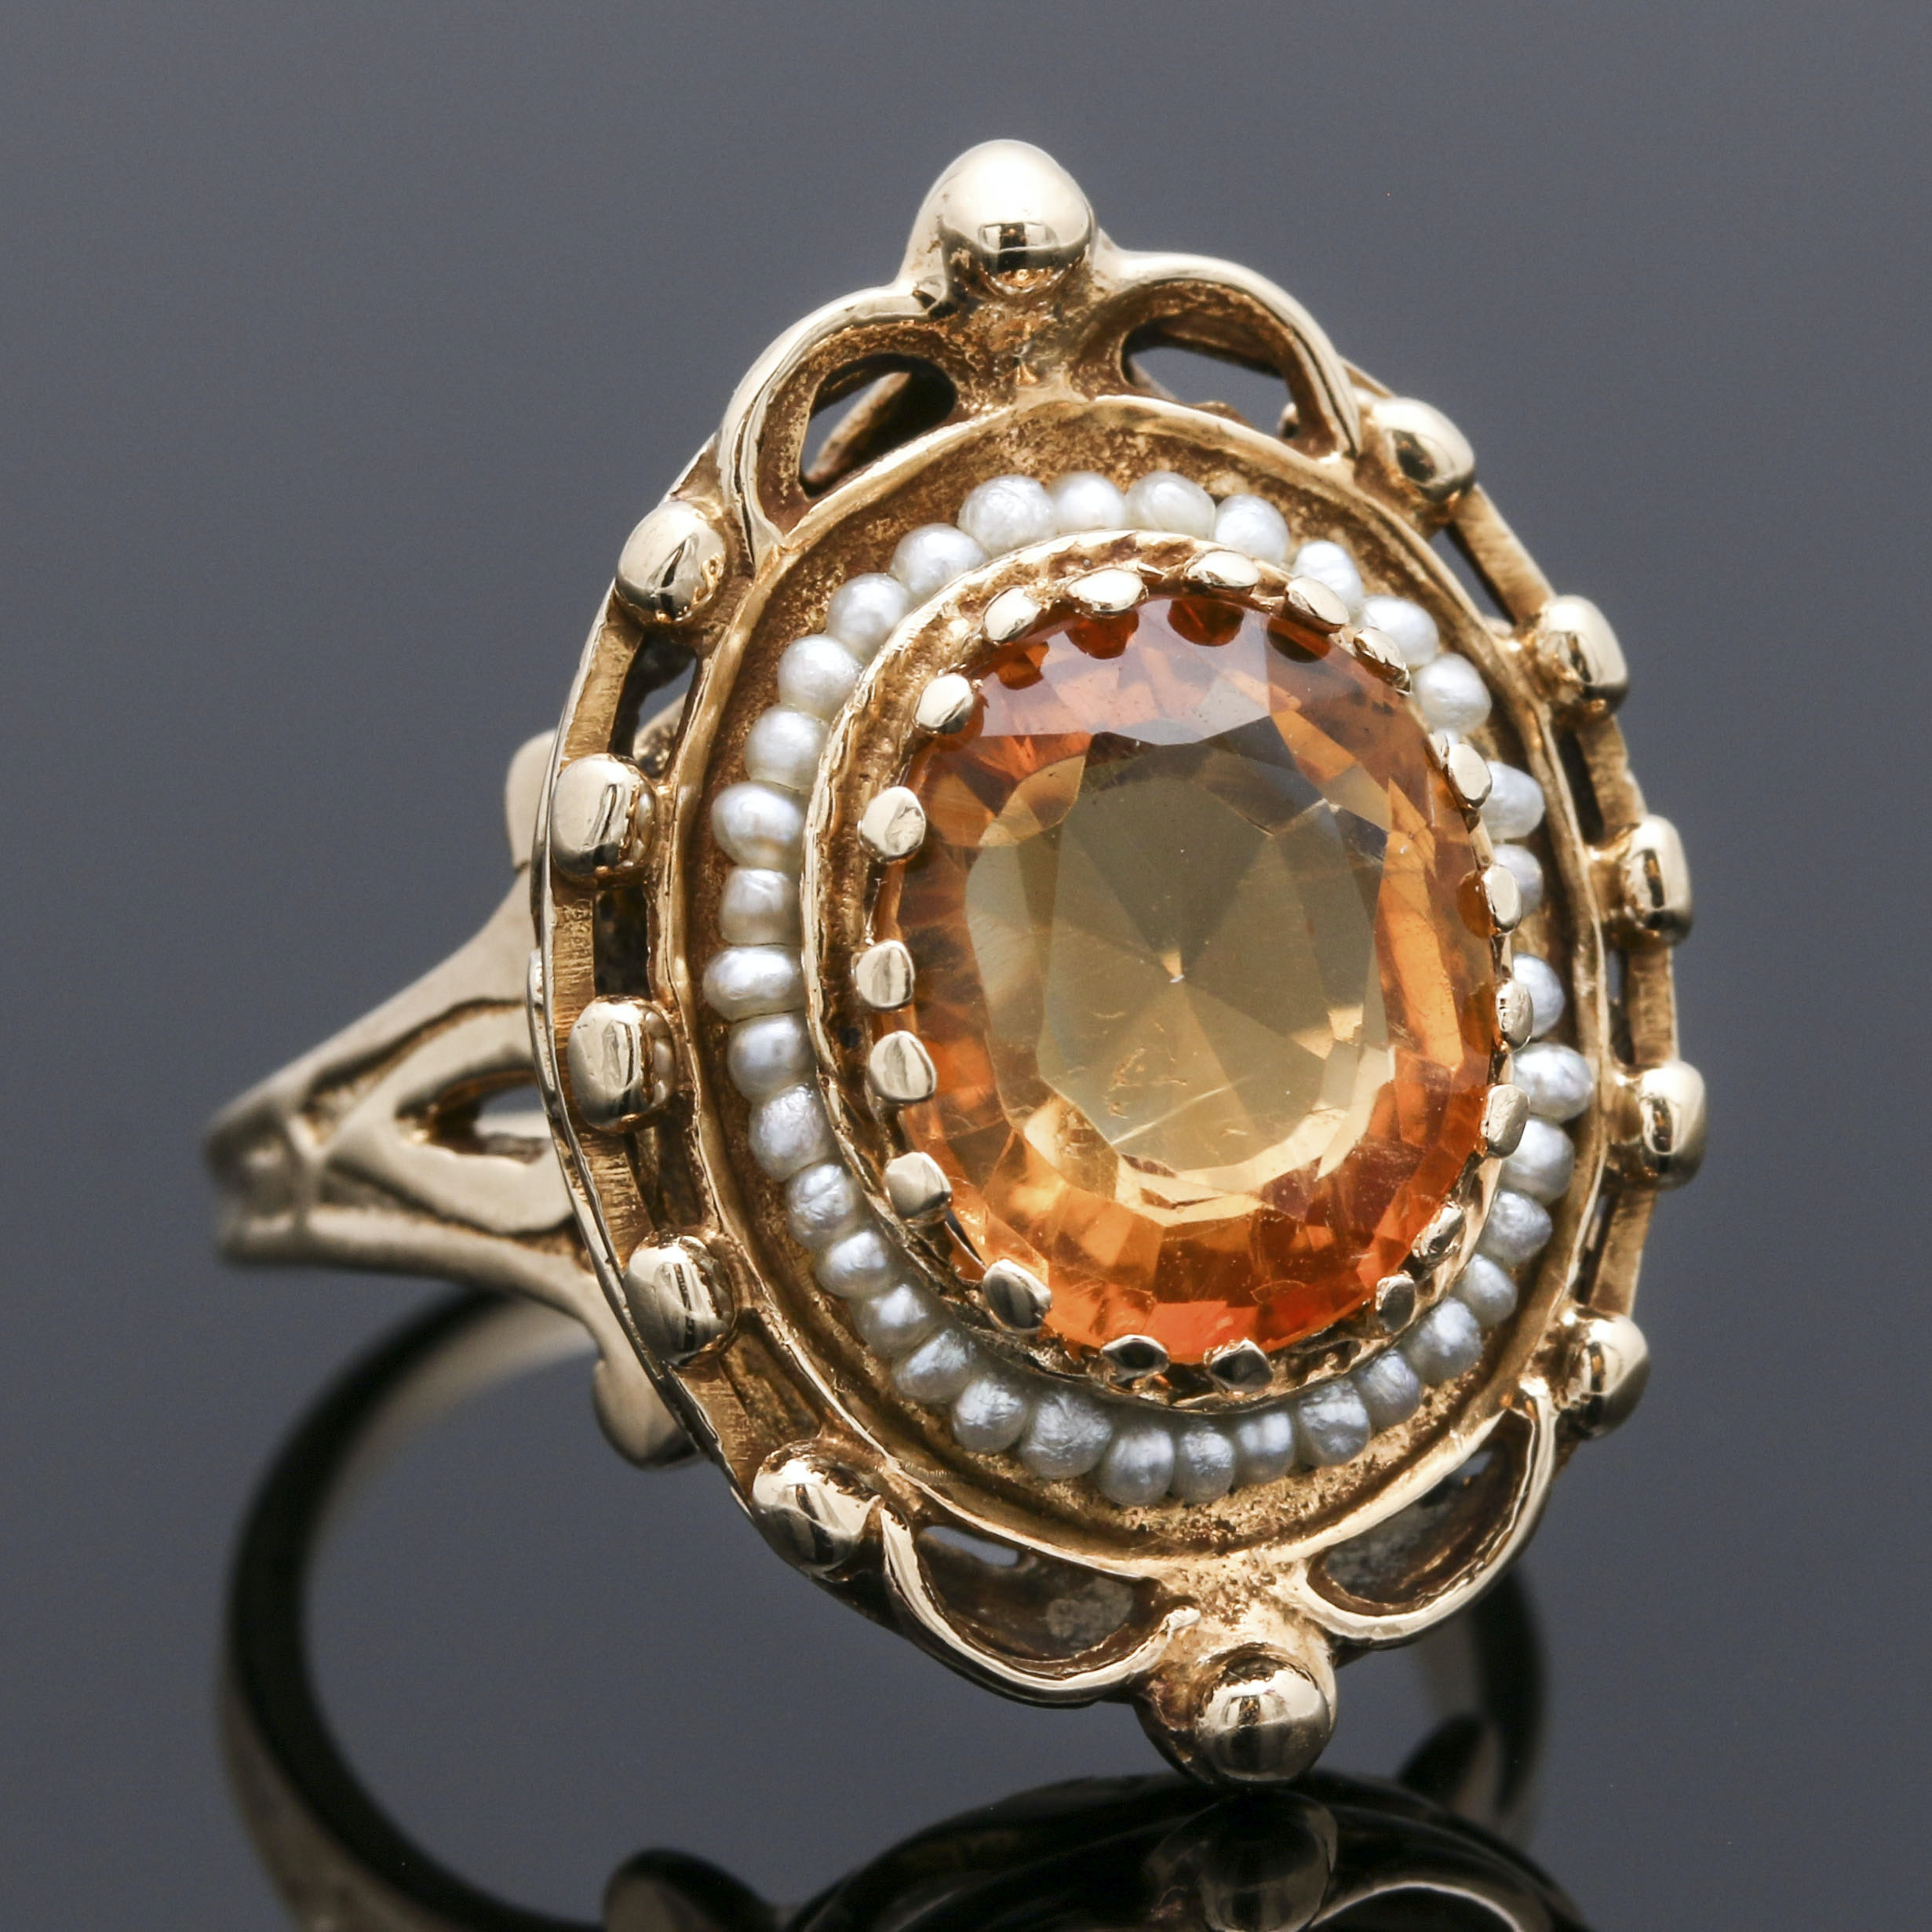 Victorian Revival 14K Yellow Gold Citrine and Seed Pearl Ring